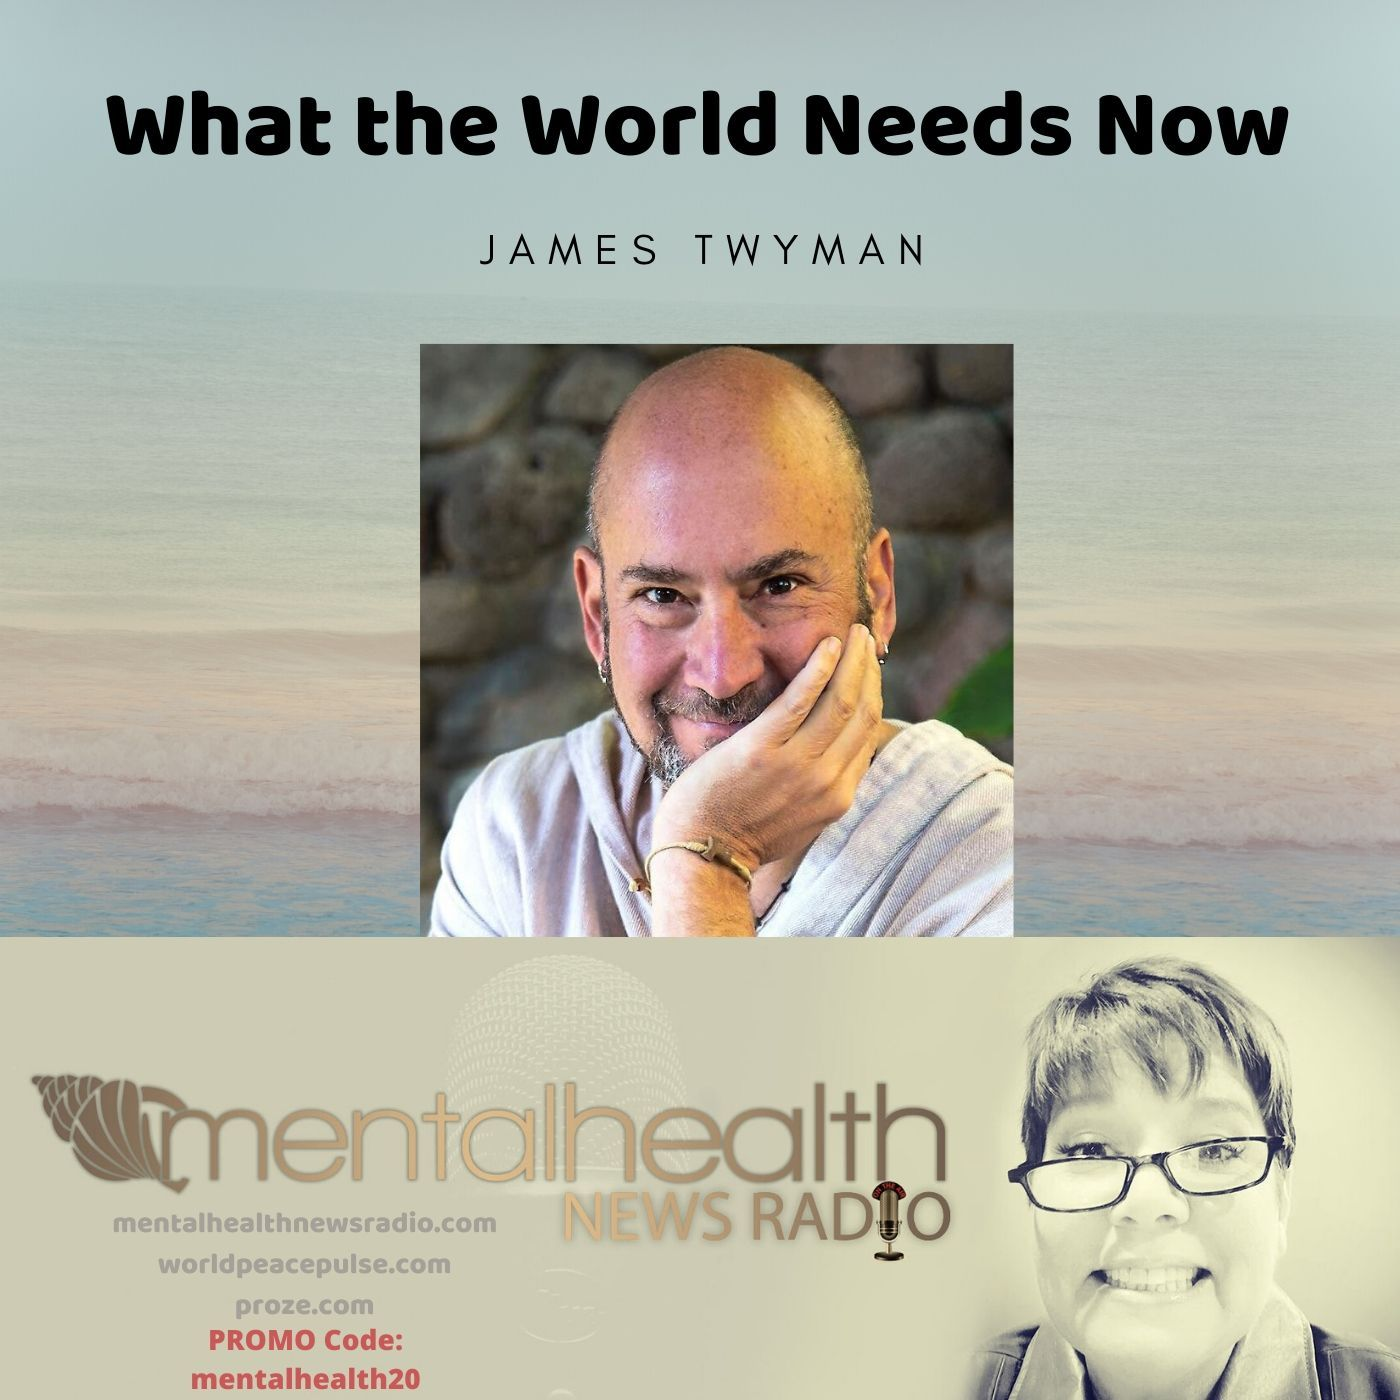 Mental Health News Radio - What the World Needs Now with James Twyman